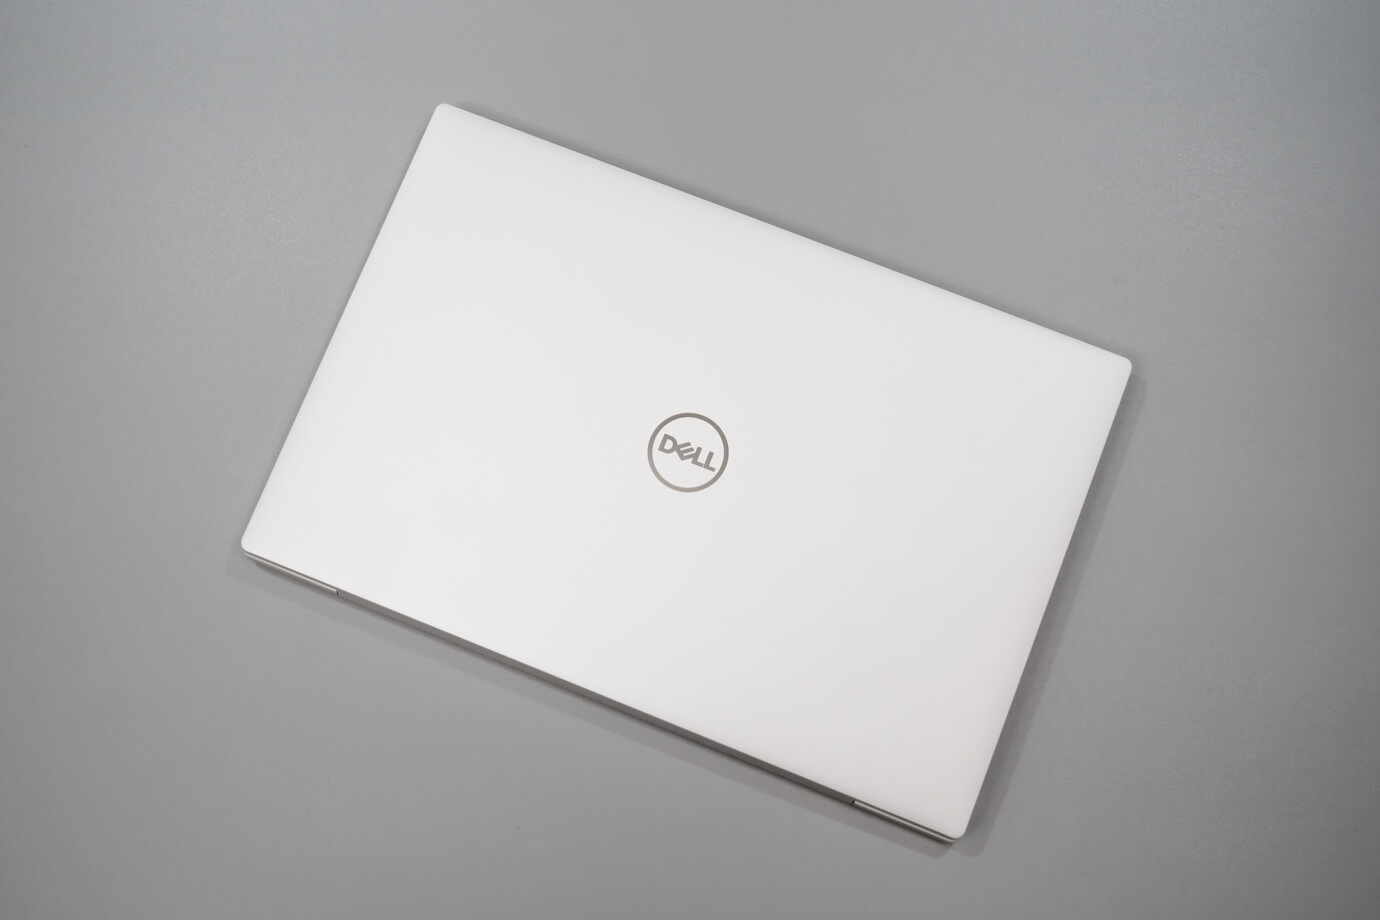 DELL XPS13 フロストの筐体